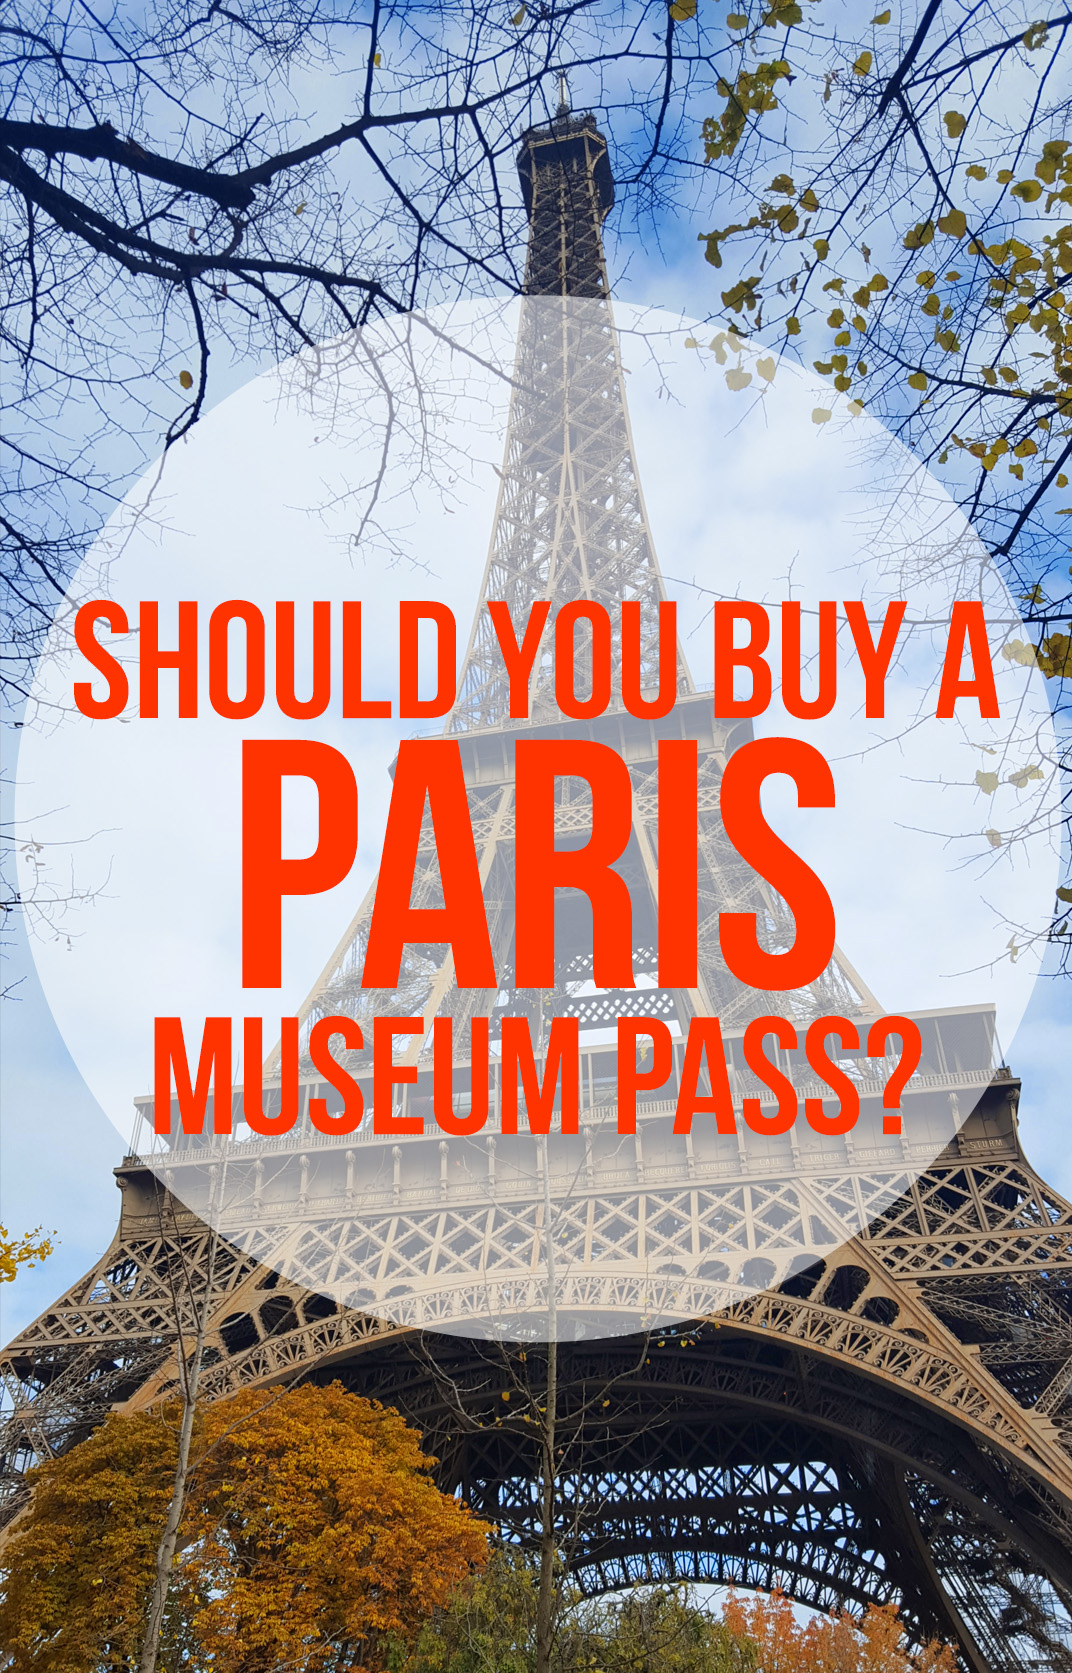 Are tourist passes like the Paris Museum Pass and Paris City Pass worth their cost? We used ours to see top Paris attractions like Notre Dame, Sainte Chappelle, Versailles, the Arc de Triomphe, and the Pantheon while saving over 40% compared to individual admission. If you're looking for how to save money in Paris without missing out on iconic attractions, this may be the key. | Things to do in Paris | Paris budget tips | #Paris | #France | #BudgetTravel | Paris City Pass | Paris tips